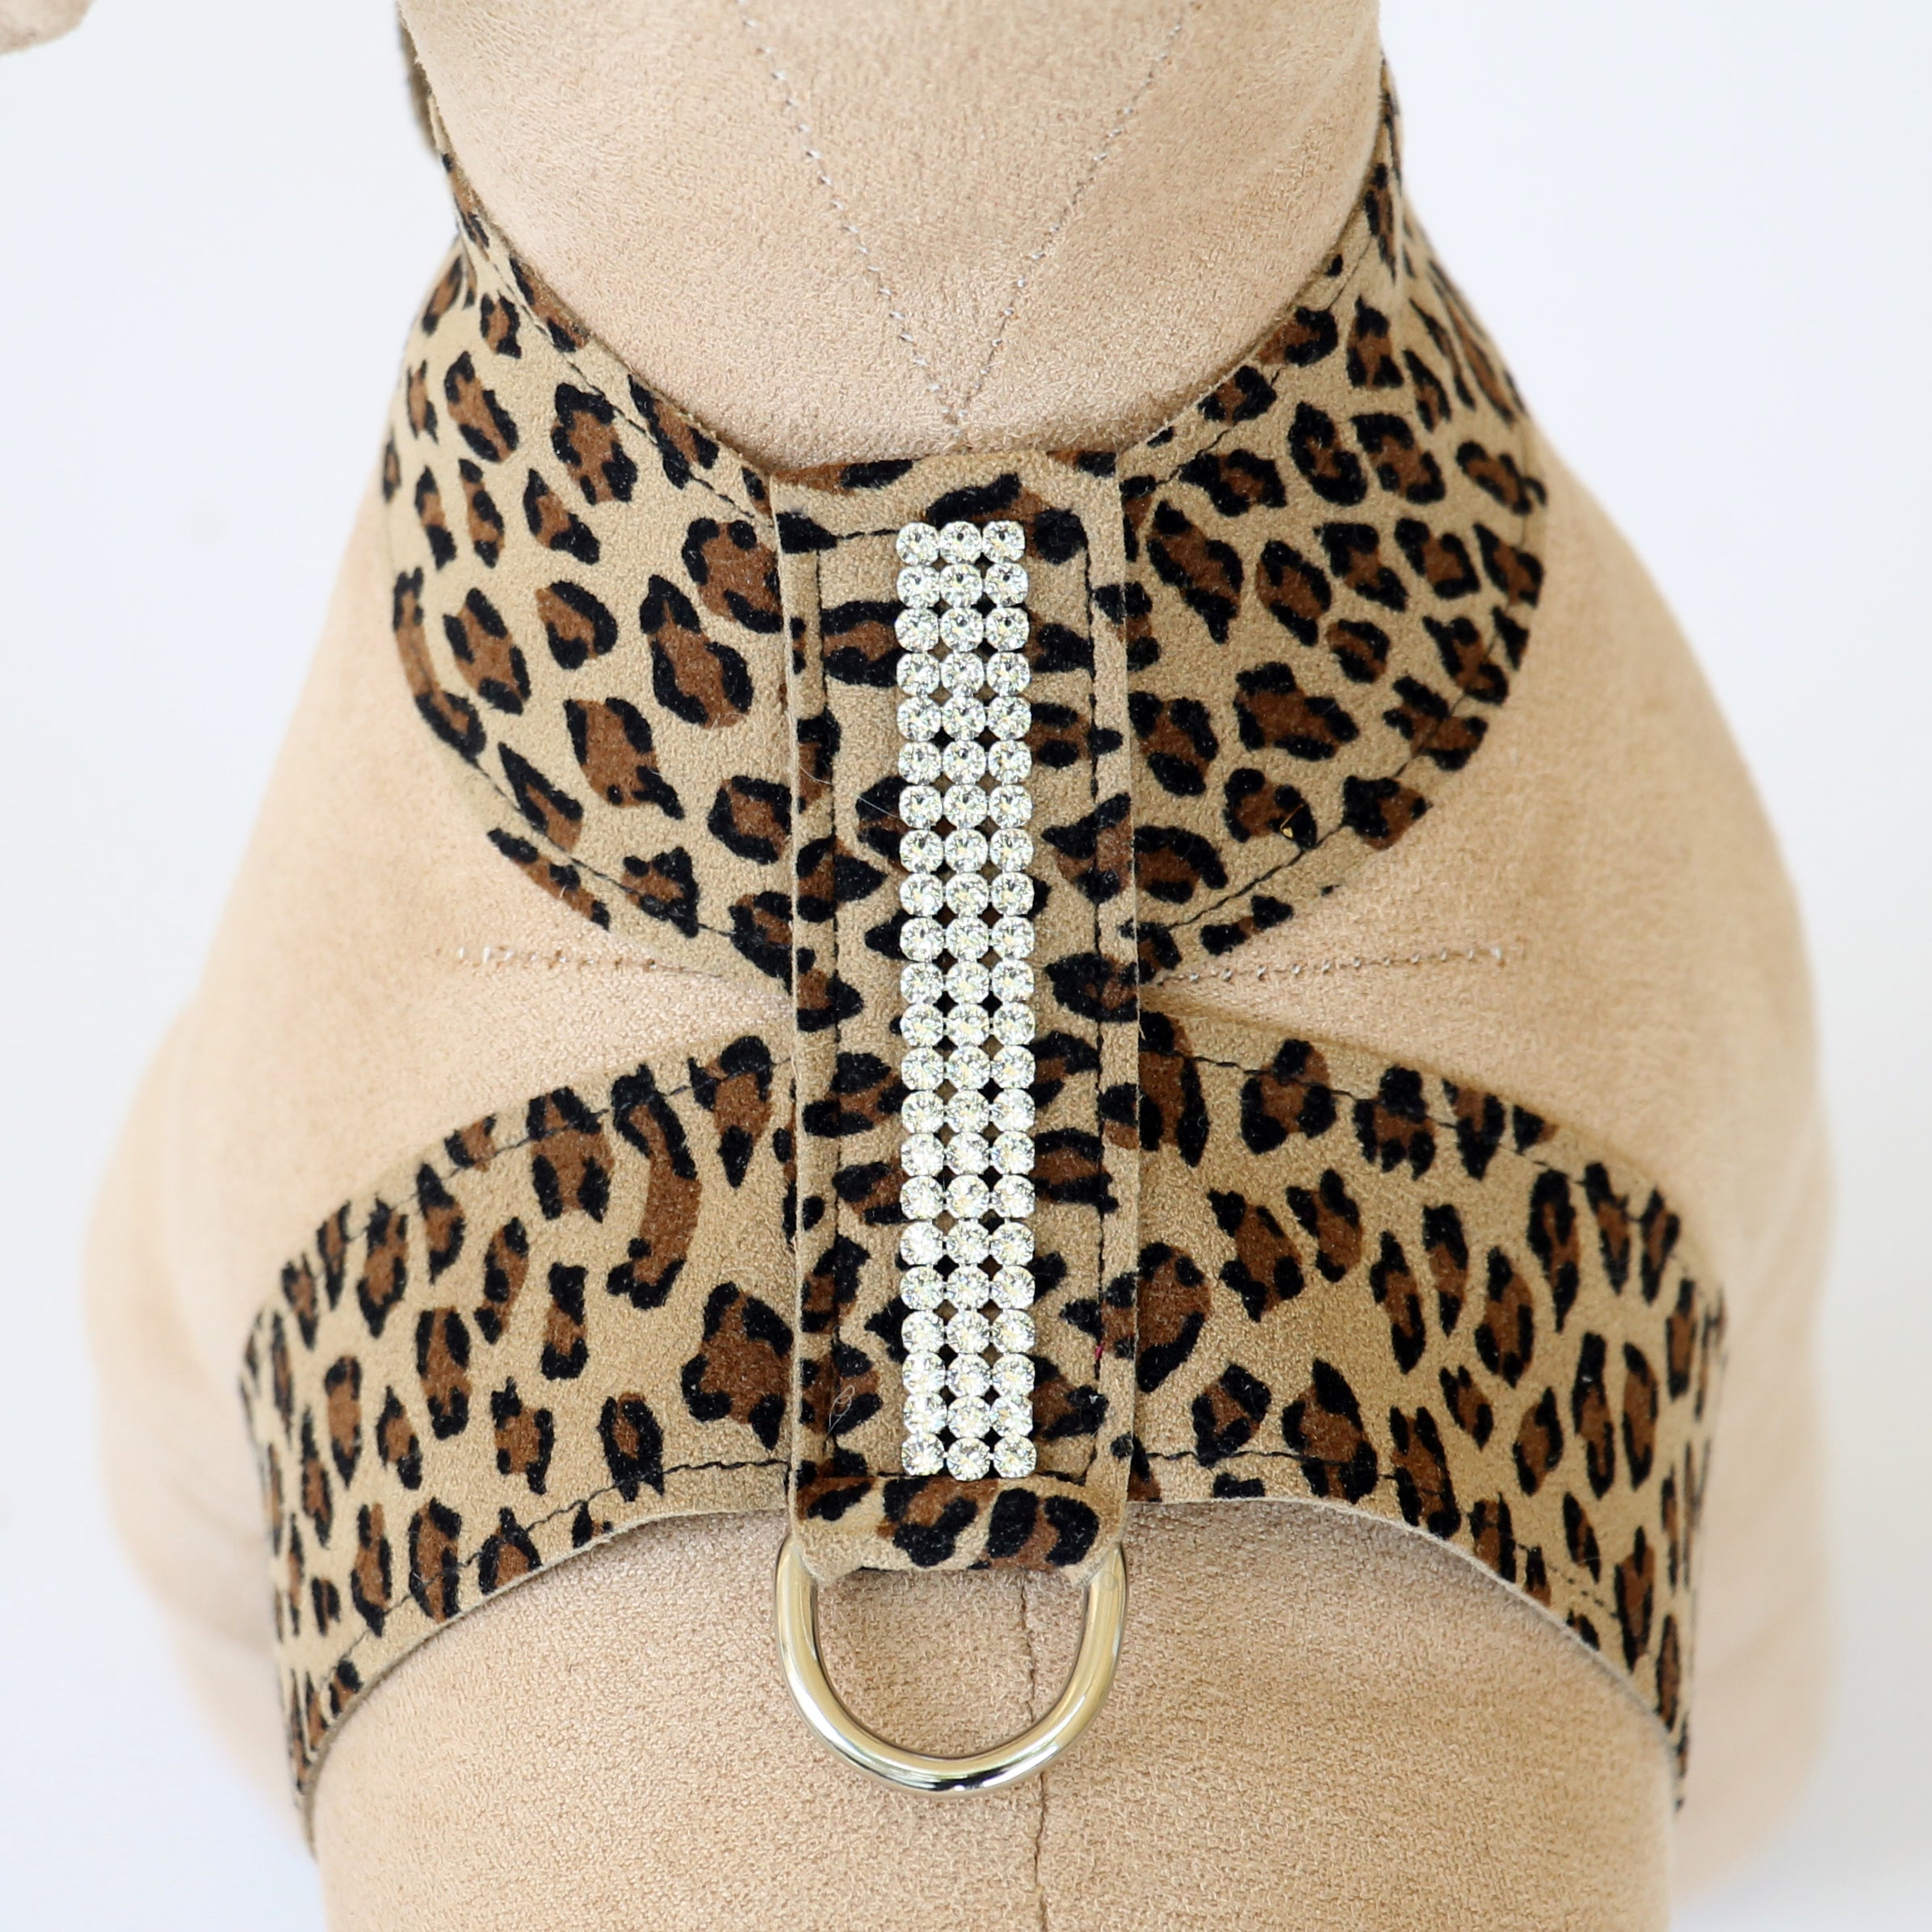 Giltmore 3-Row Crystal Pet Harness: Cheetah